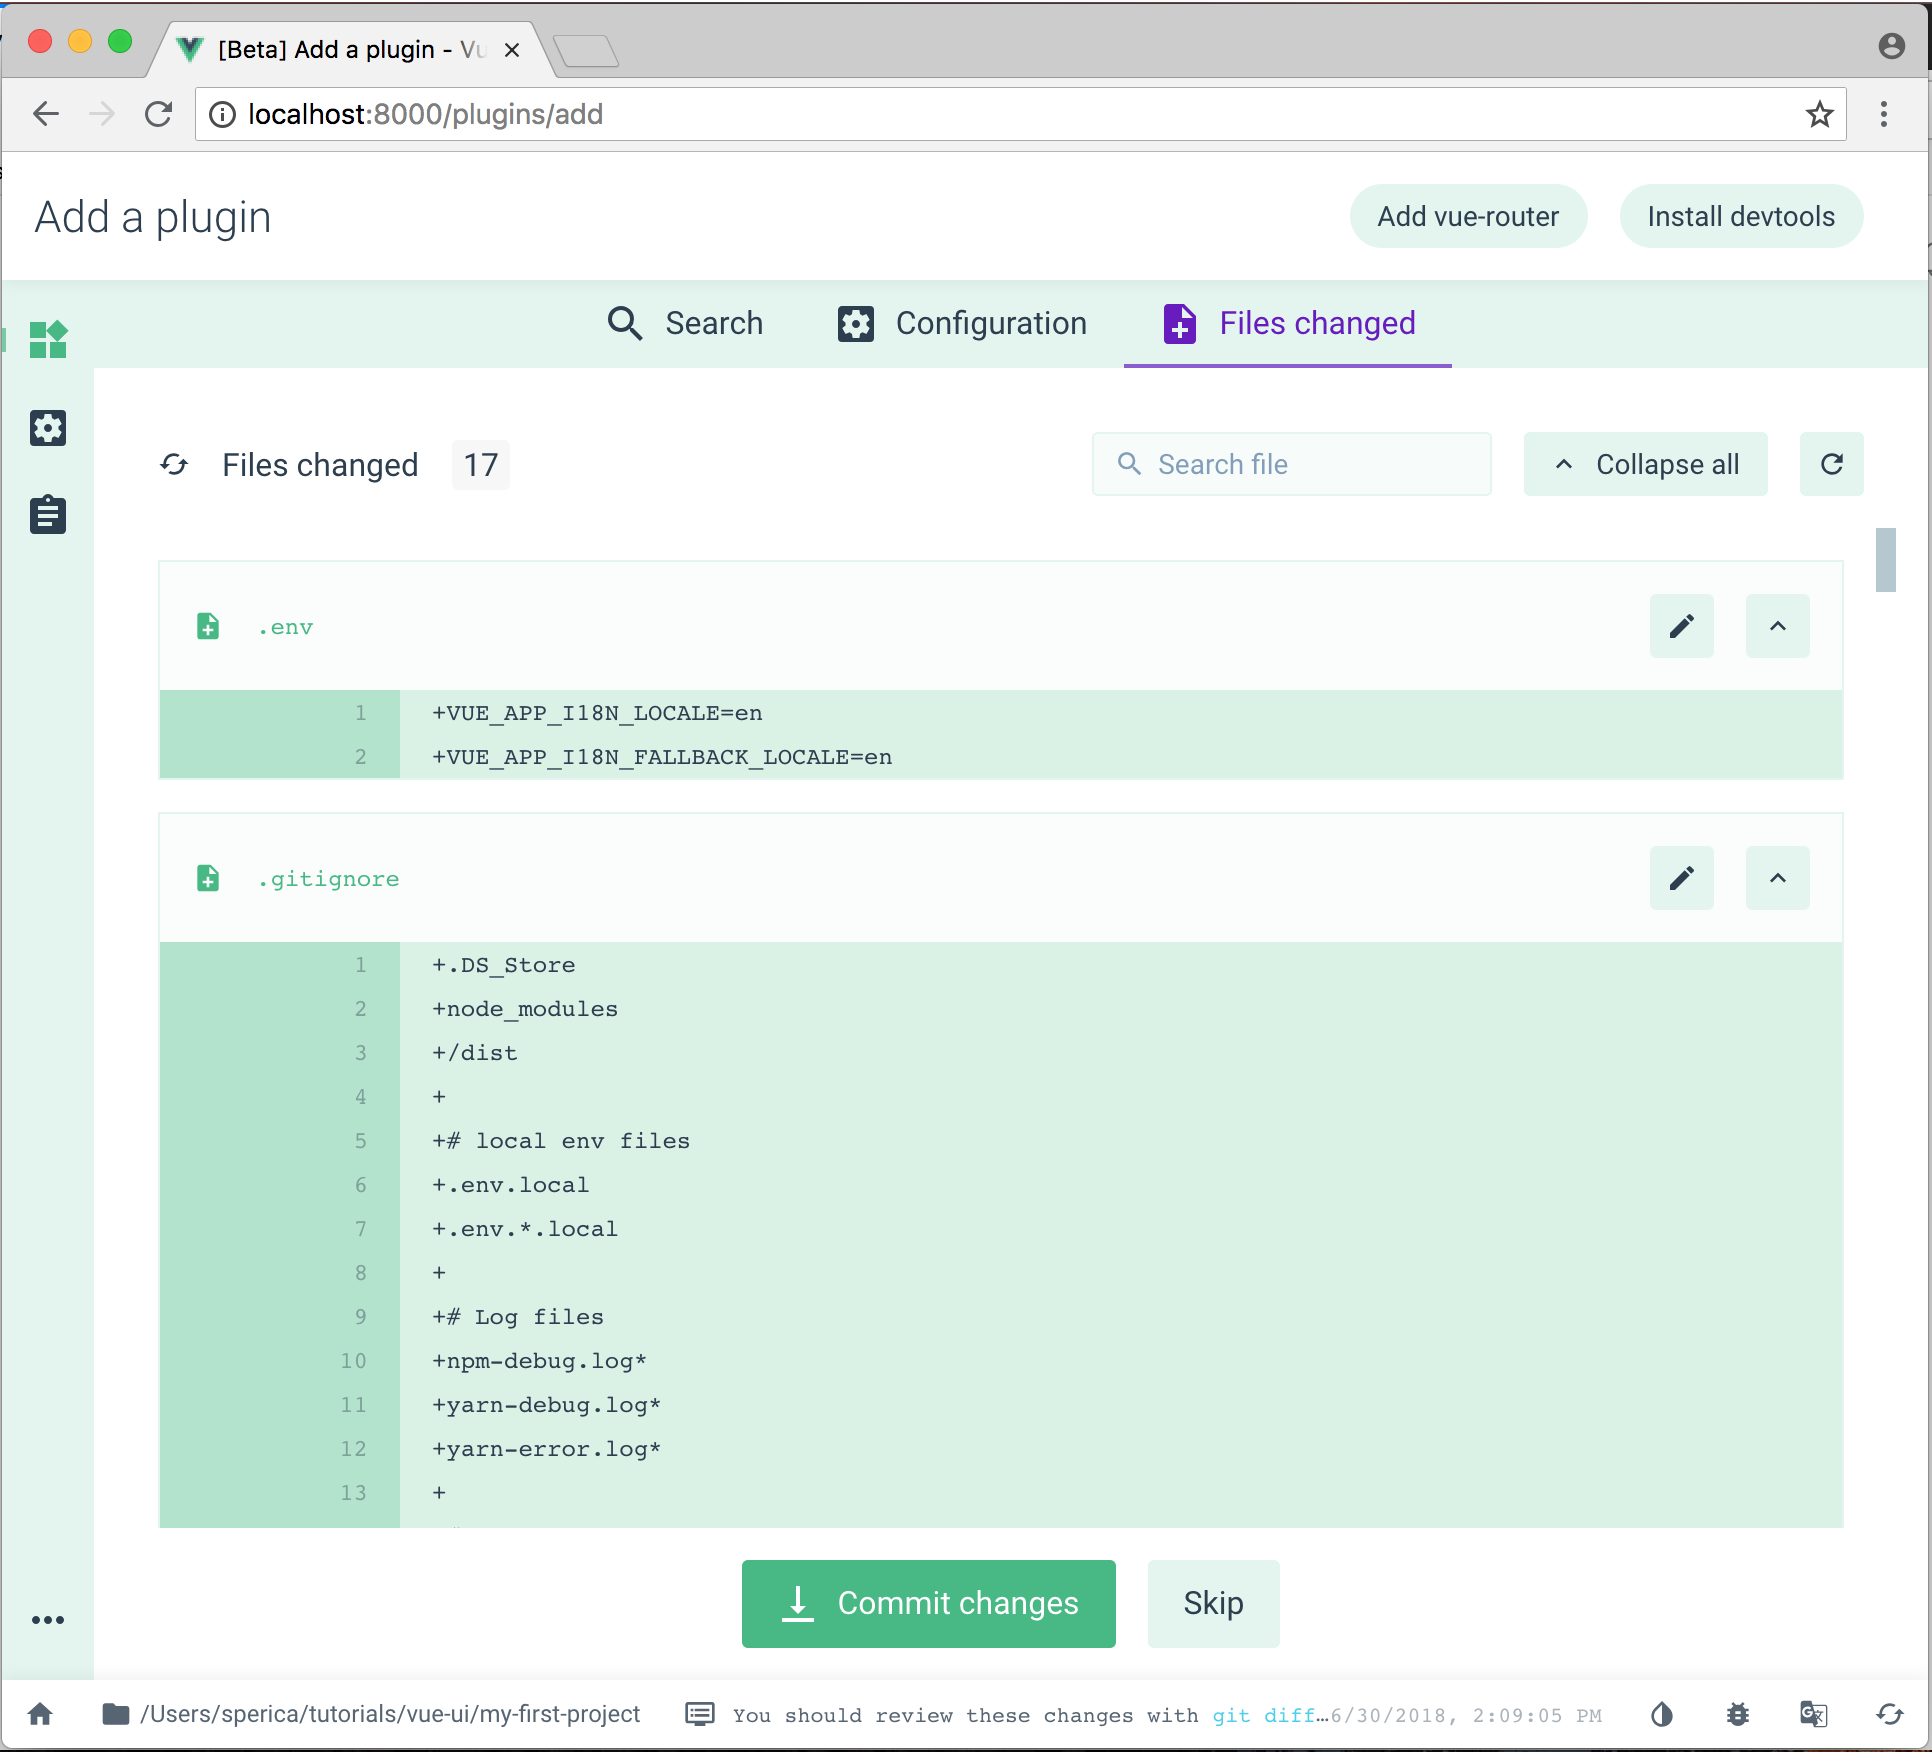 Vue UI: A First Look - Morningstar Engineering